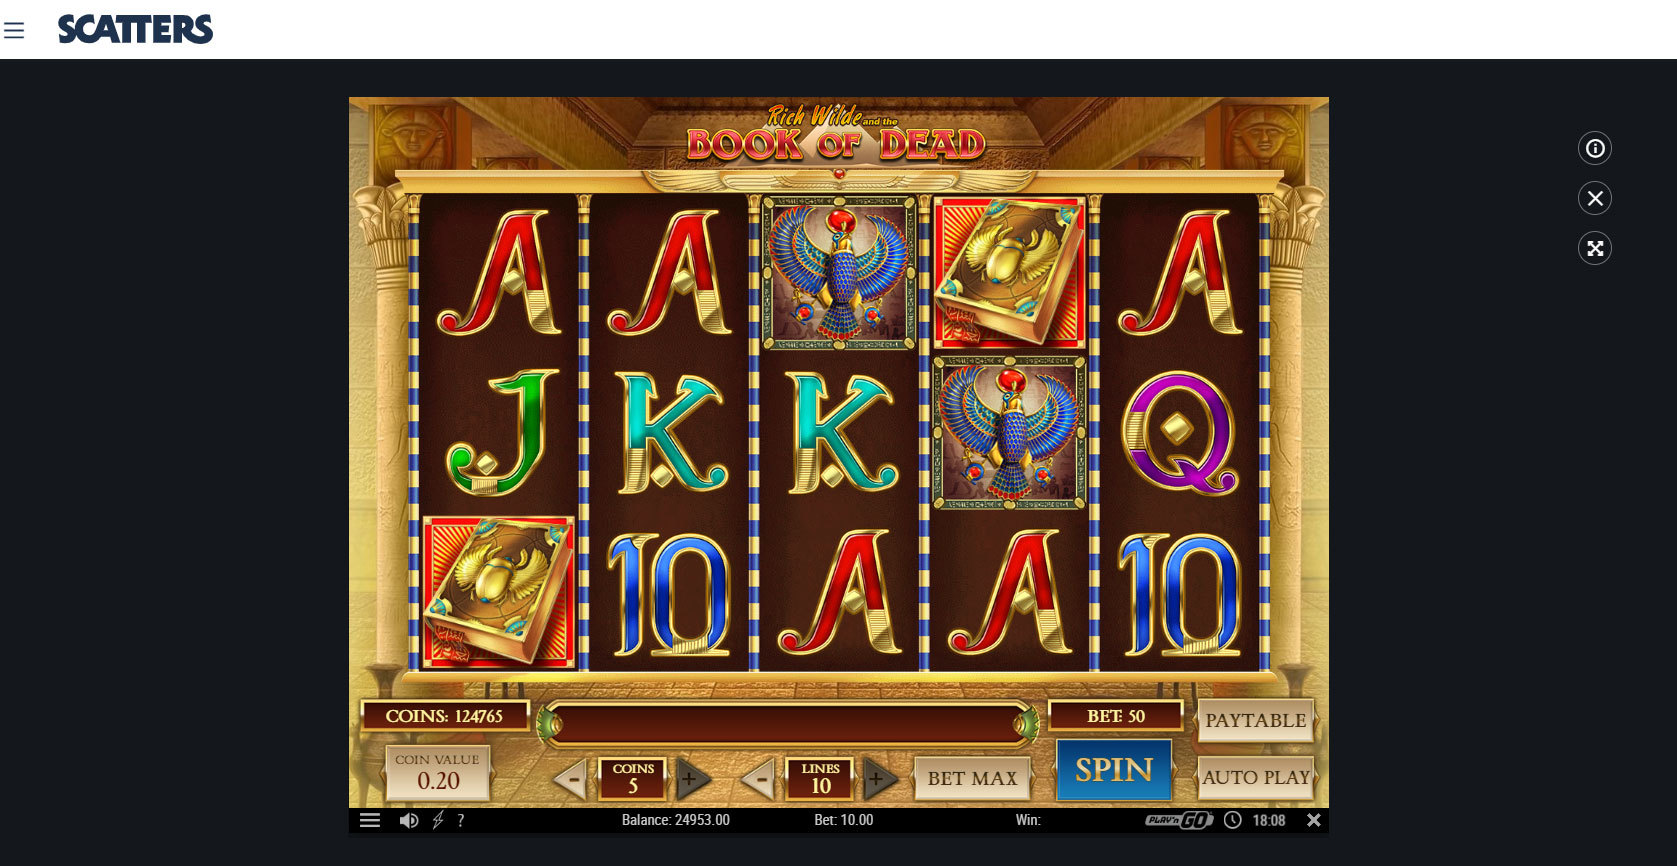 Play Book of Dead Slot by Play'n Go Free or Real Money at Scatters Casino